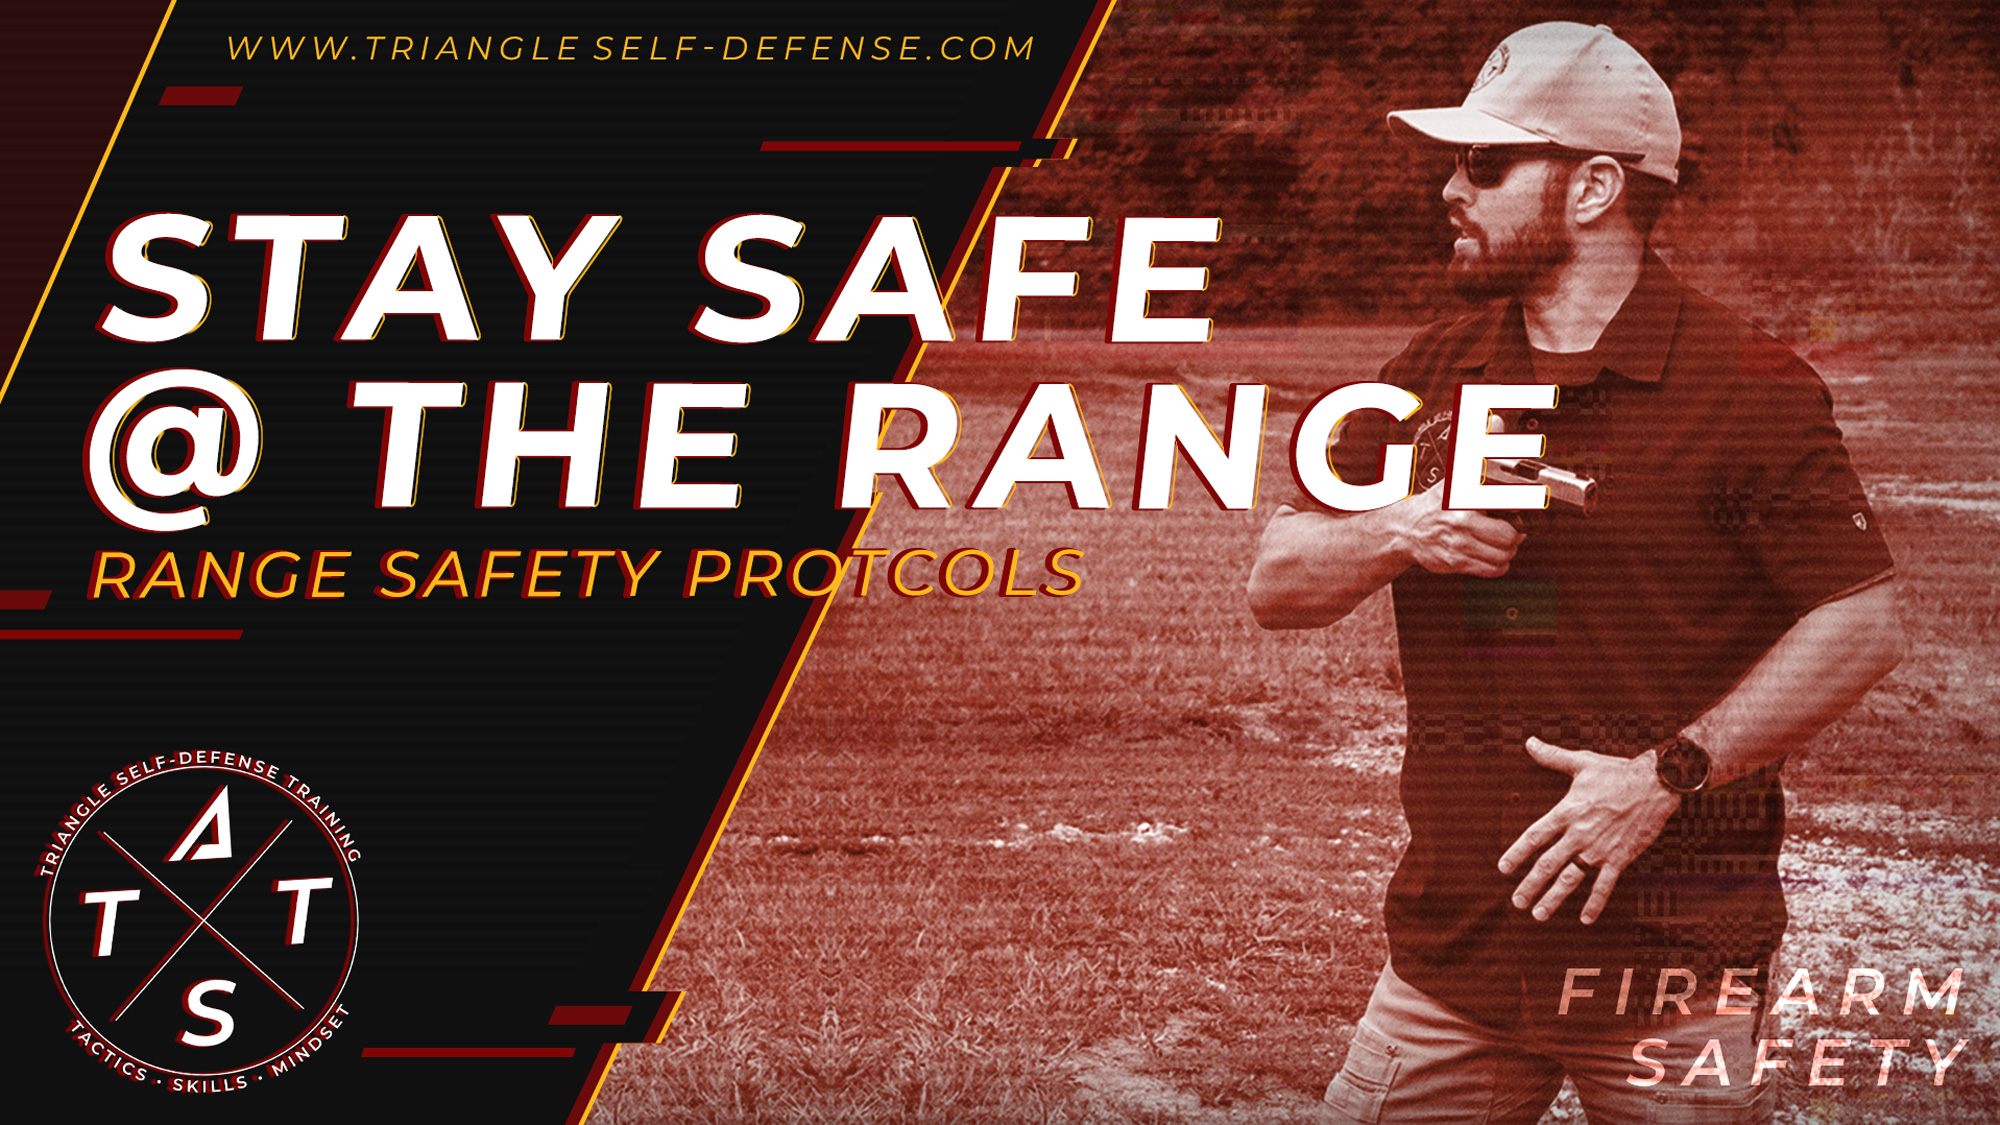 Range Safety Rules And Protocols